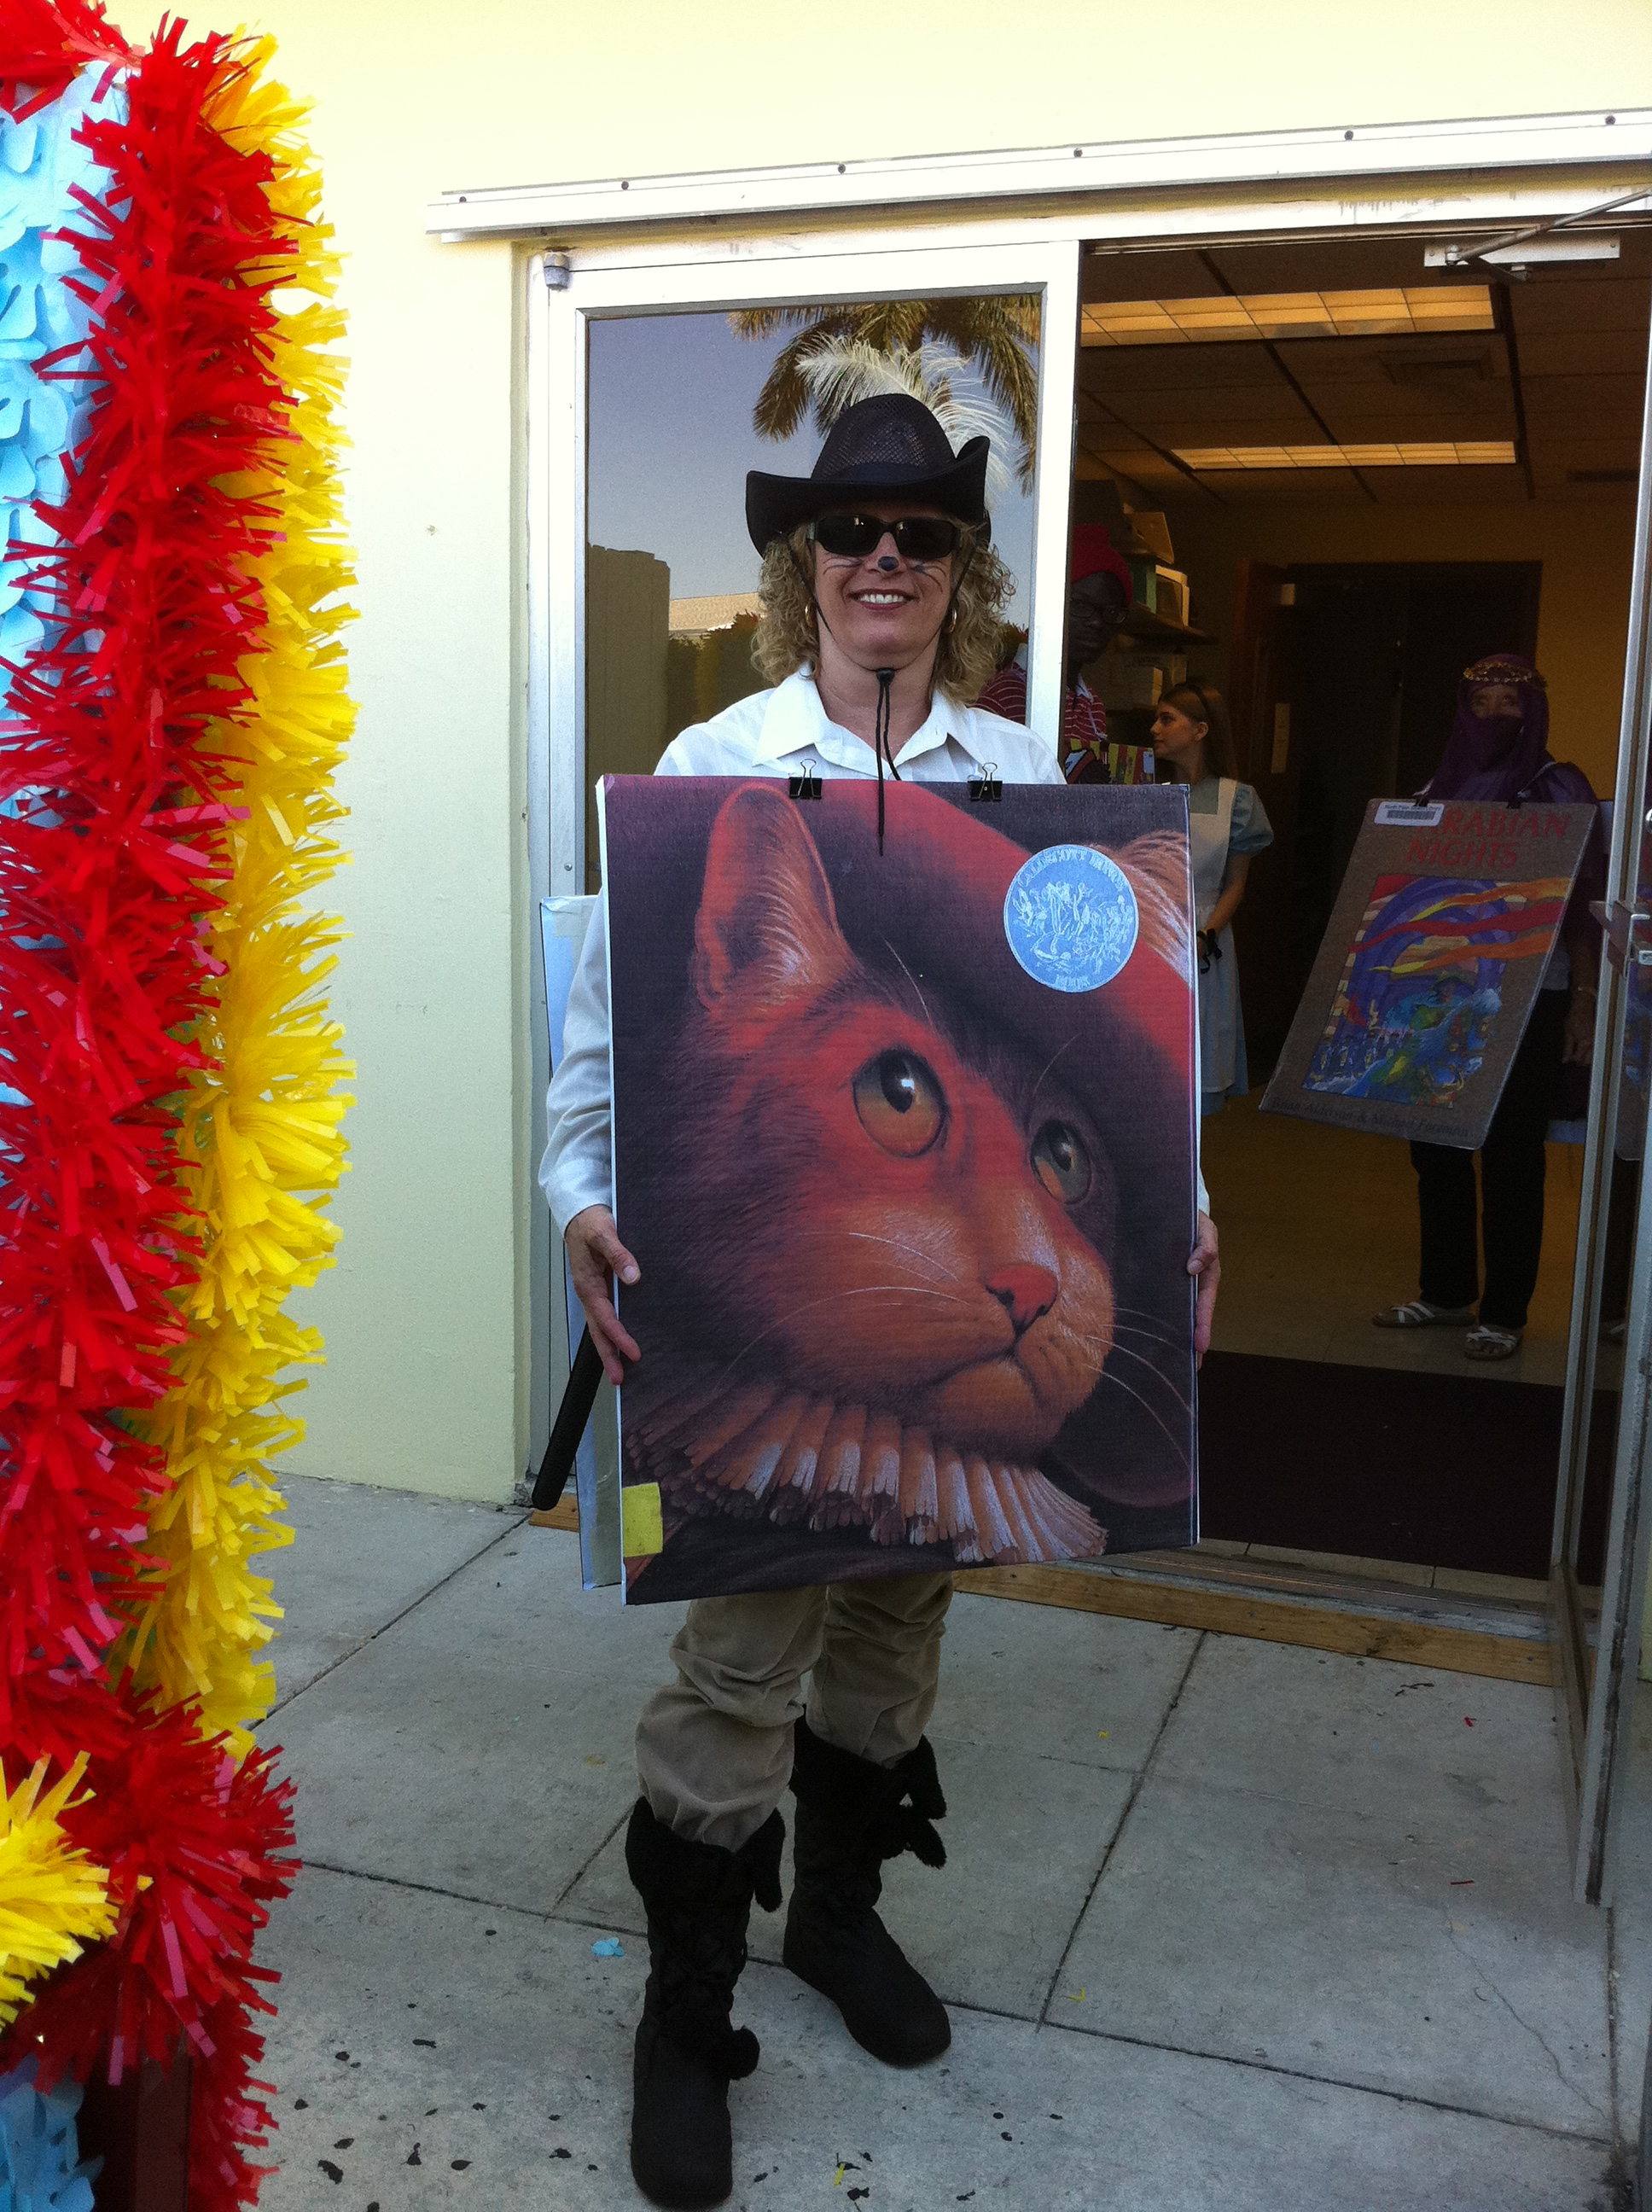 A parade participant dressed as a cat book